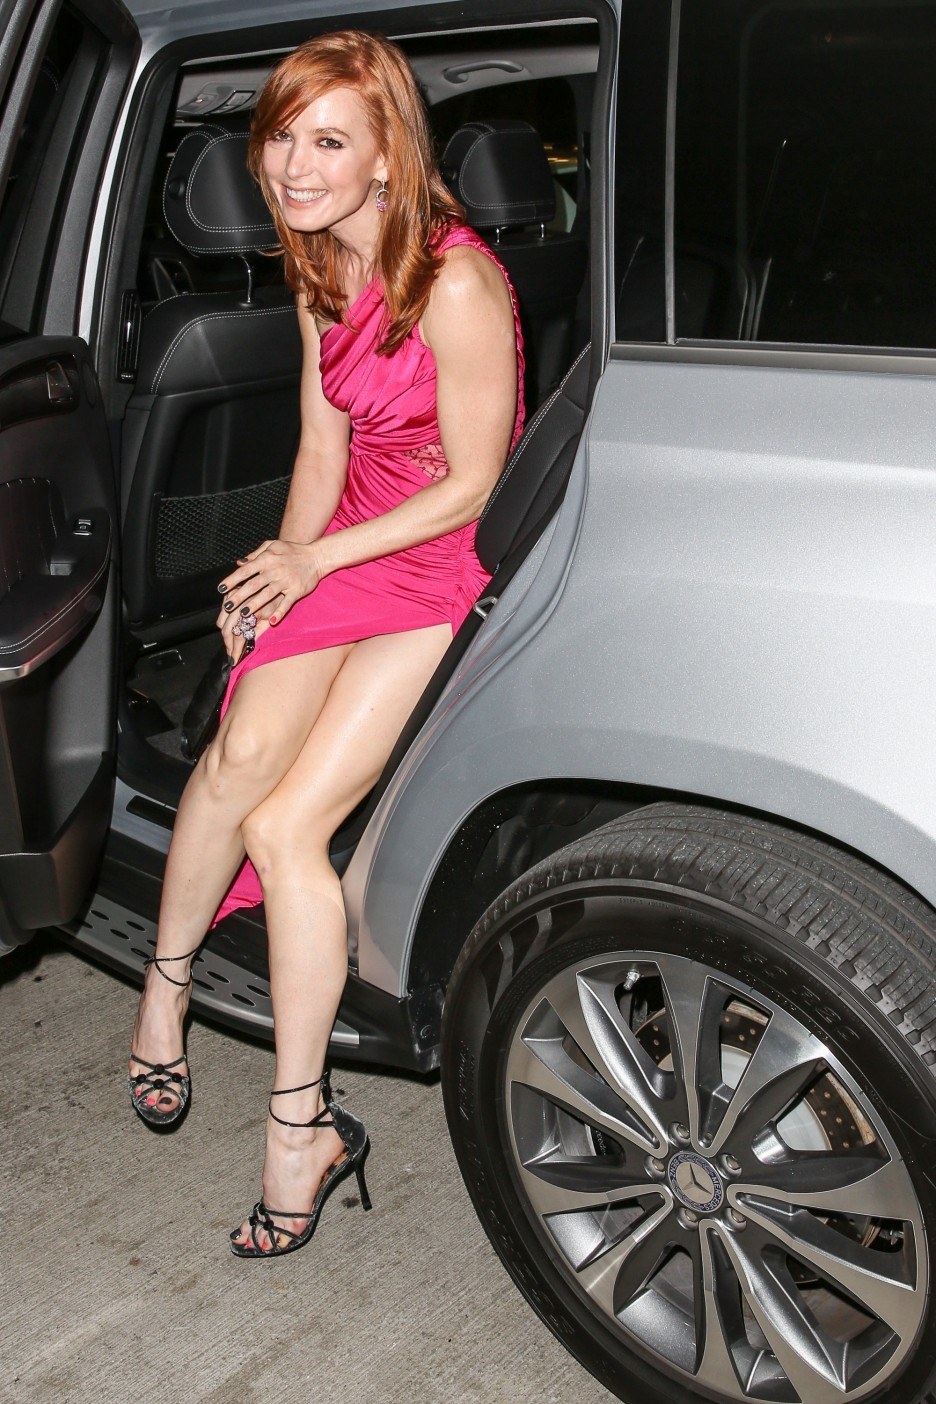 Alicia witt joint body 2